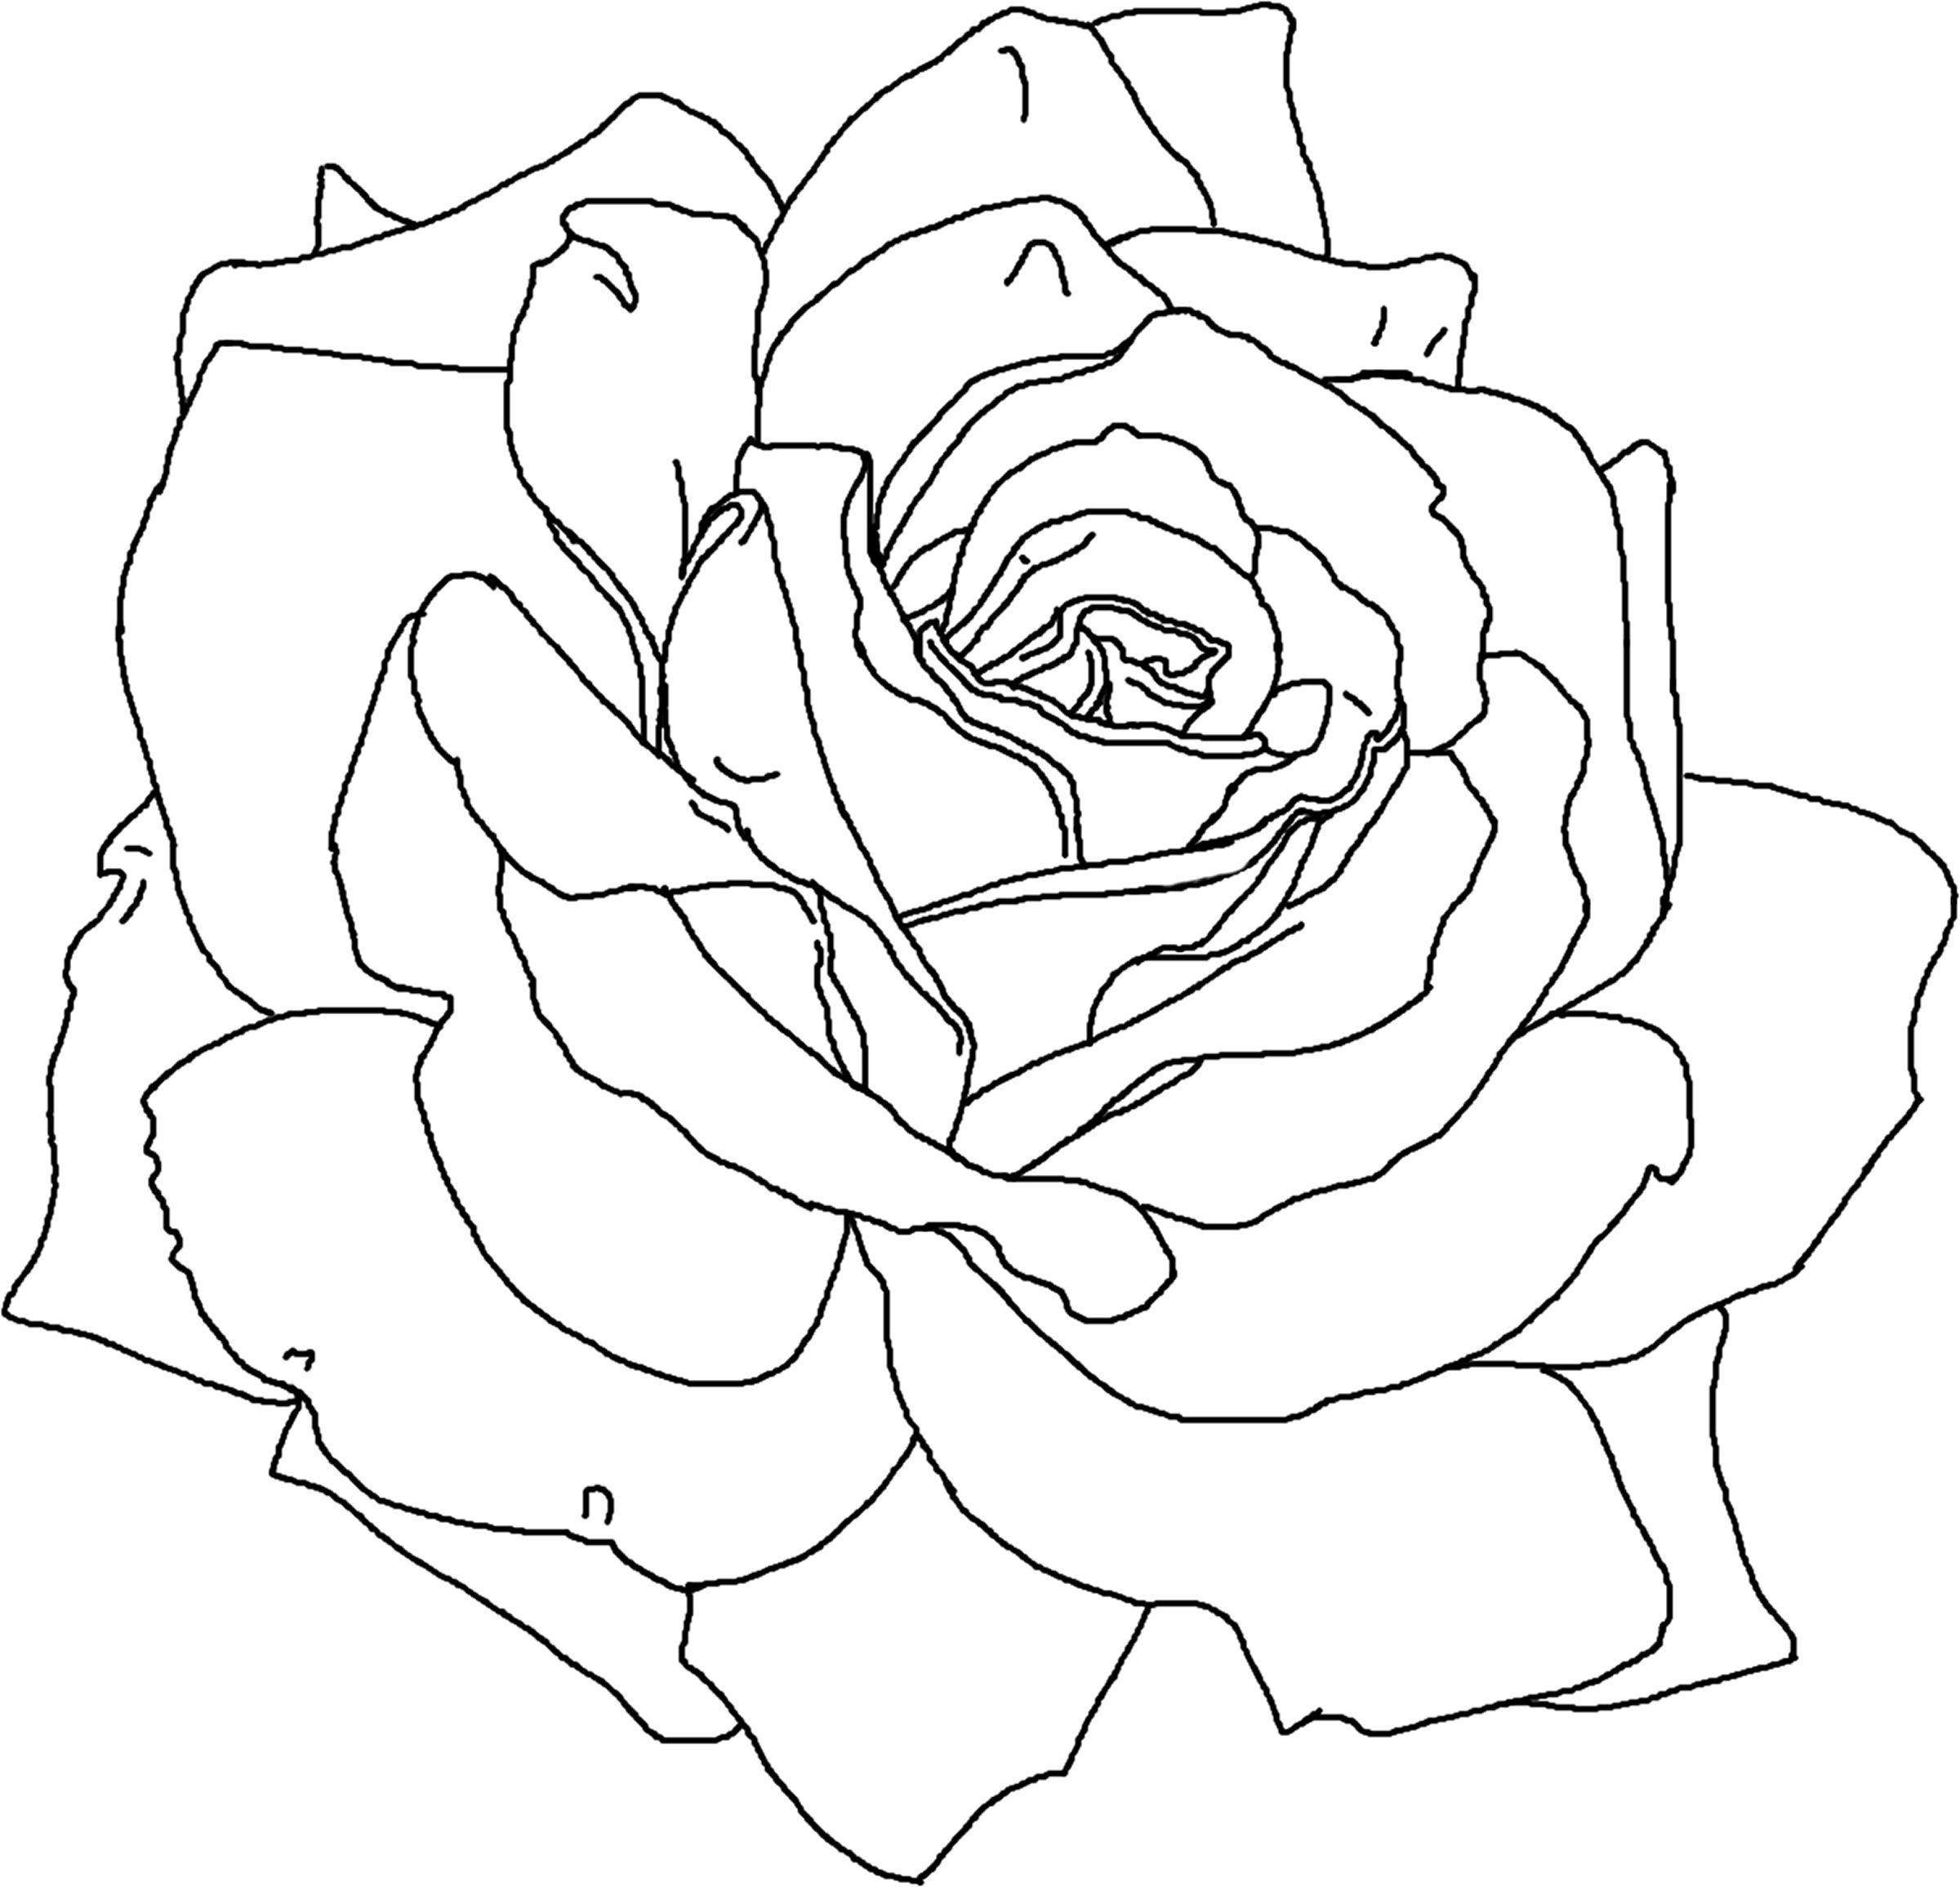 download and print rose flower coloring pages printable - Coloring Pages Roses